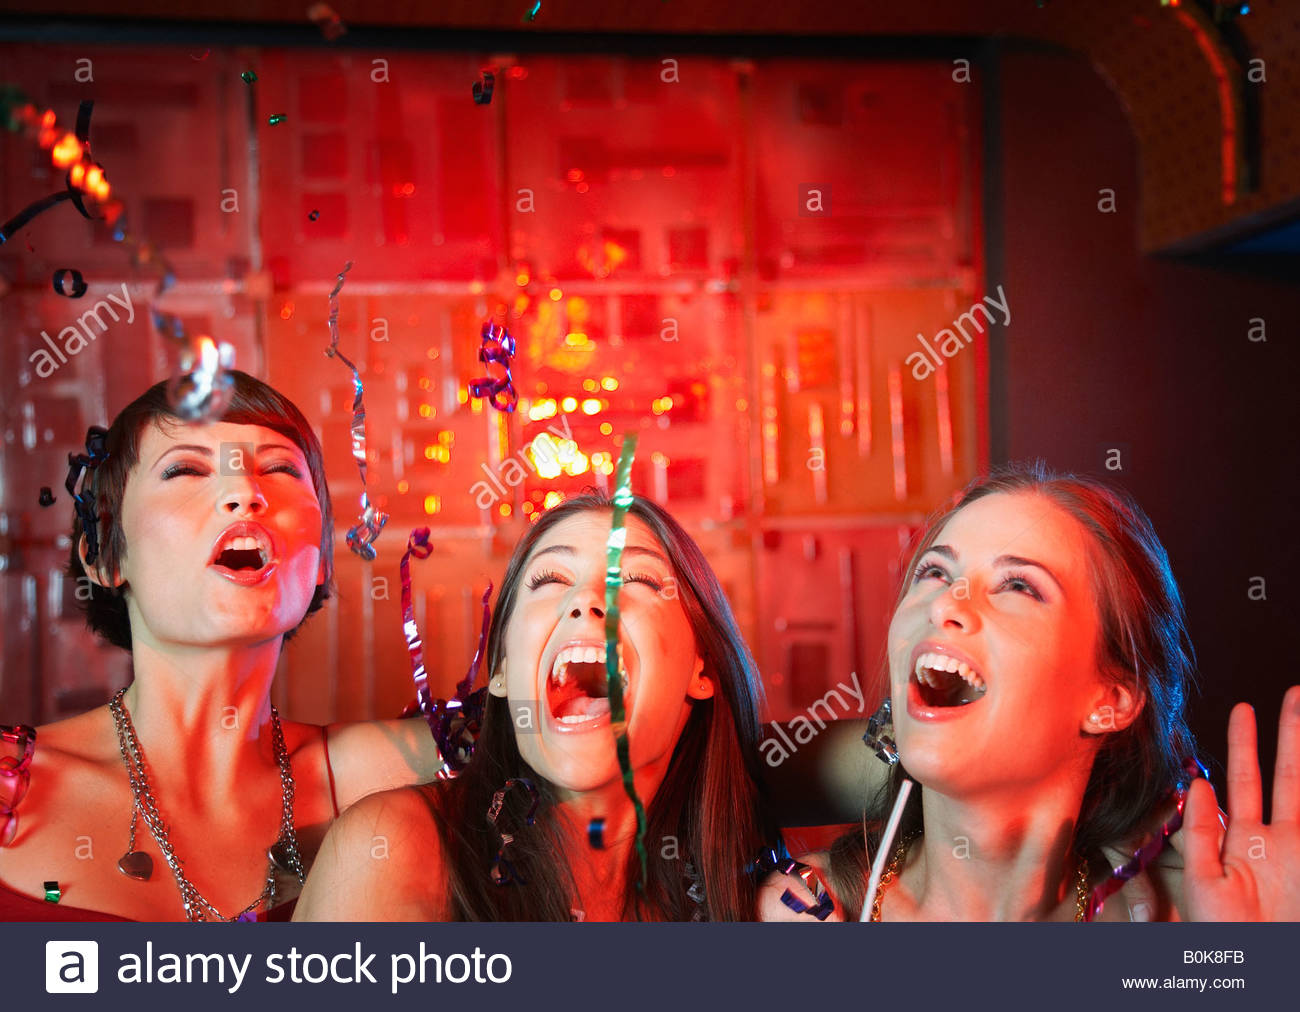 Three women in a nightclub drinking and laughing Stock Foto